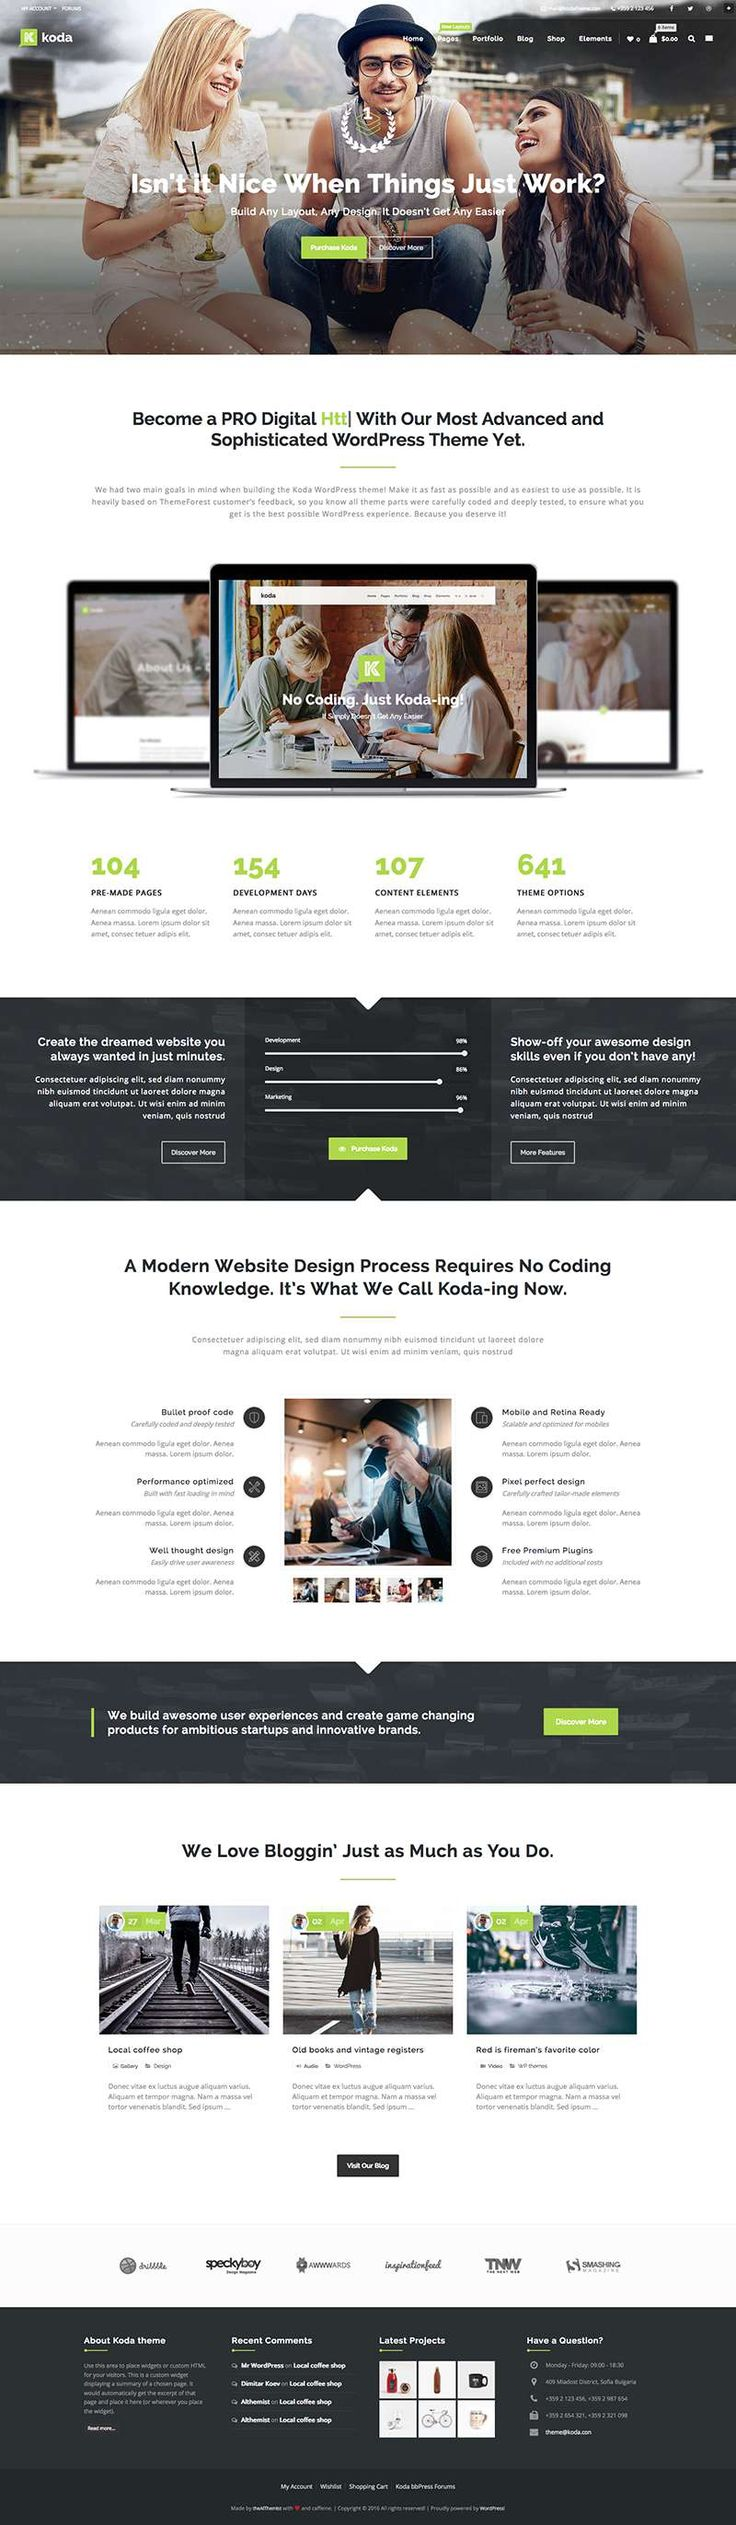 396 best WordPress Themes images on Pinterest | Engine, Fonts and ...